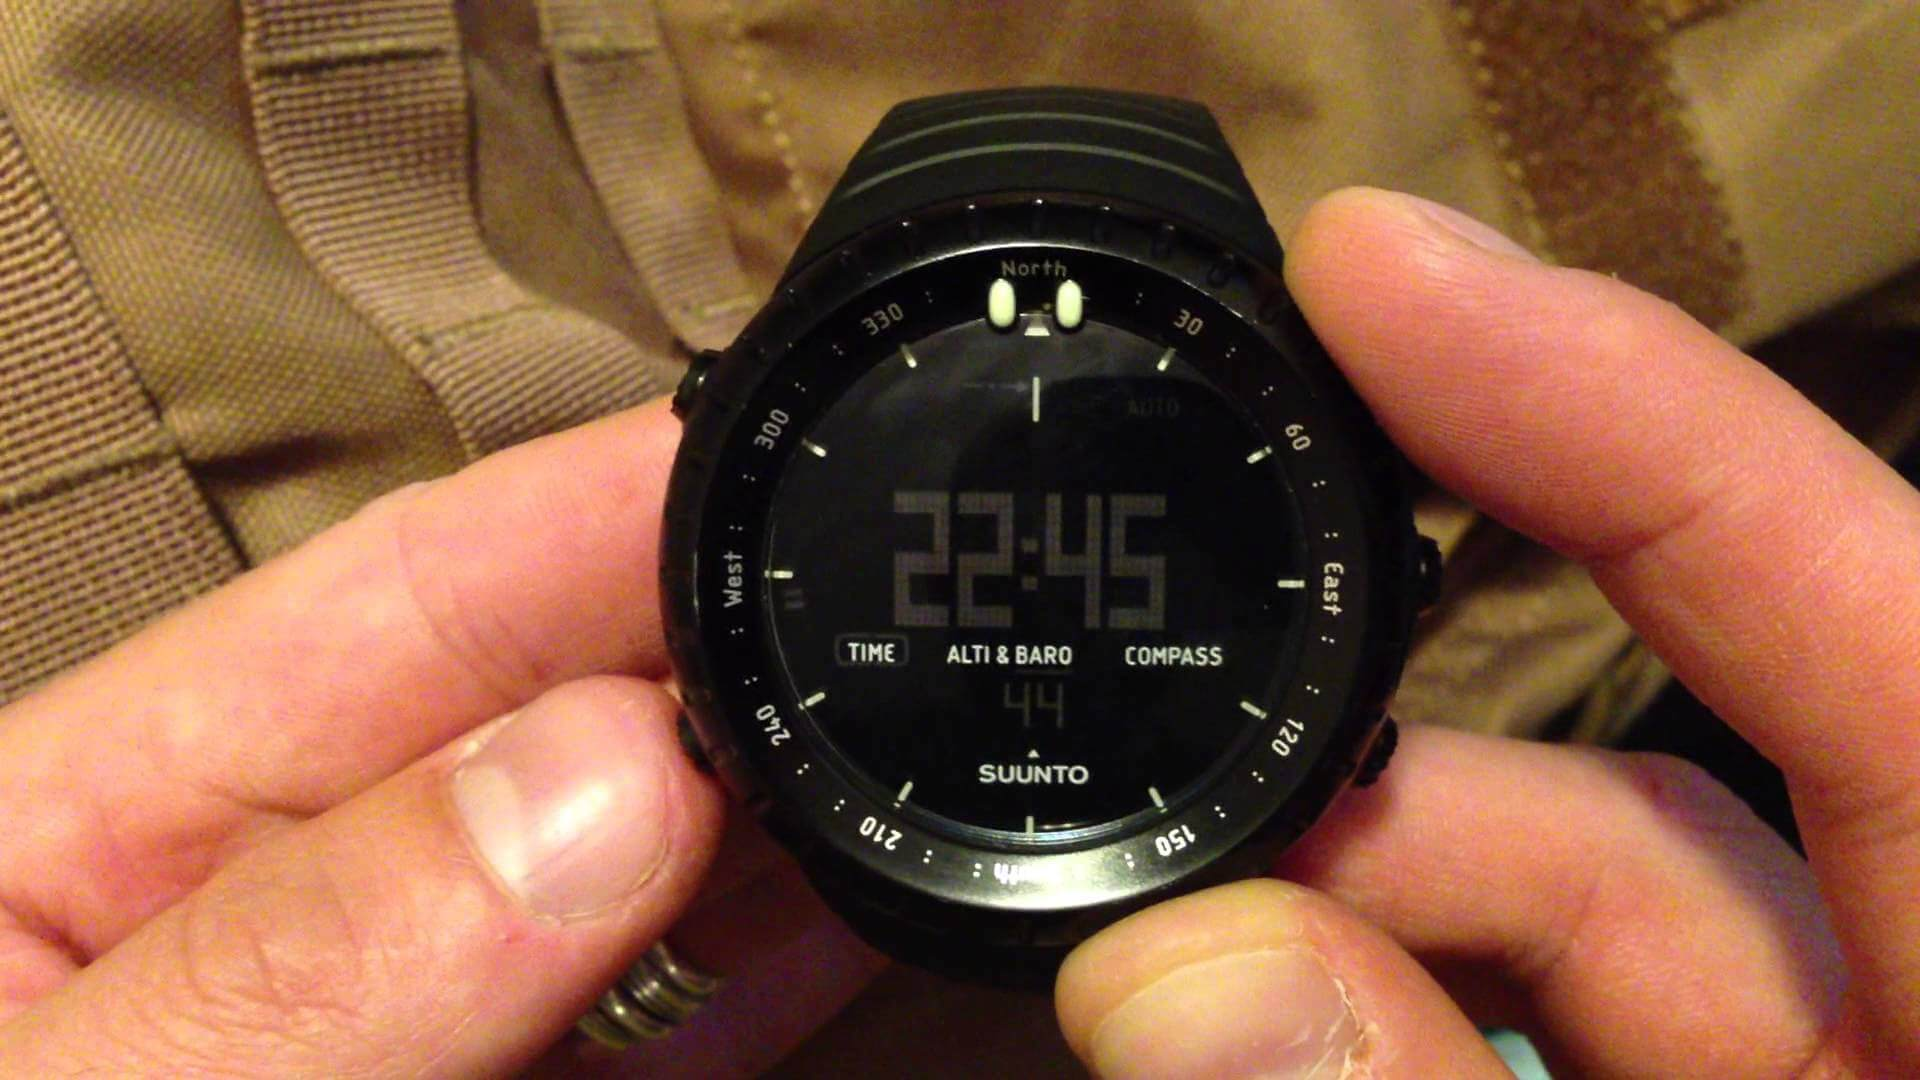 watch all suunto black altimeter photo outdoors core review com abc feedthehabit watches